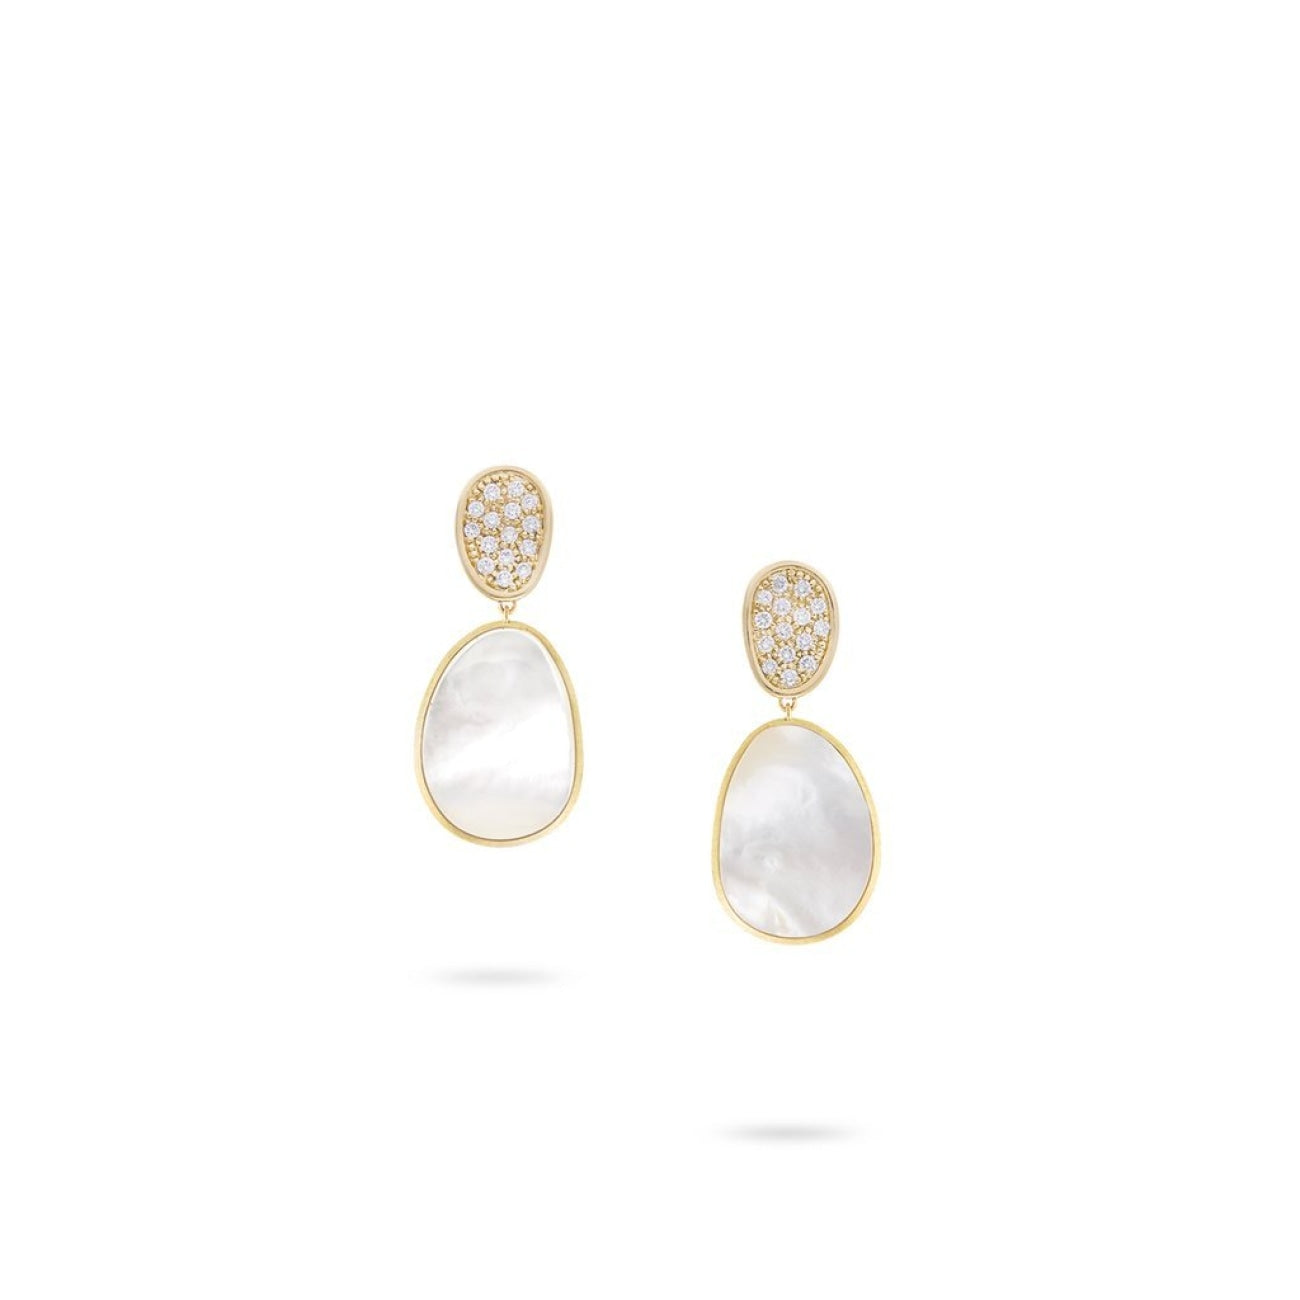 Marco Bicego Jewelry - 18K Yellow Gold and White Mother of Pearl with Diamond Pave Small Drop Earrings | Manfredi Jewels